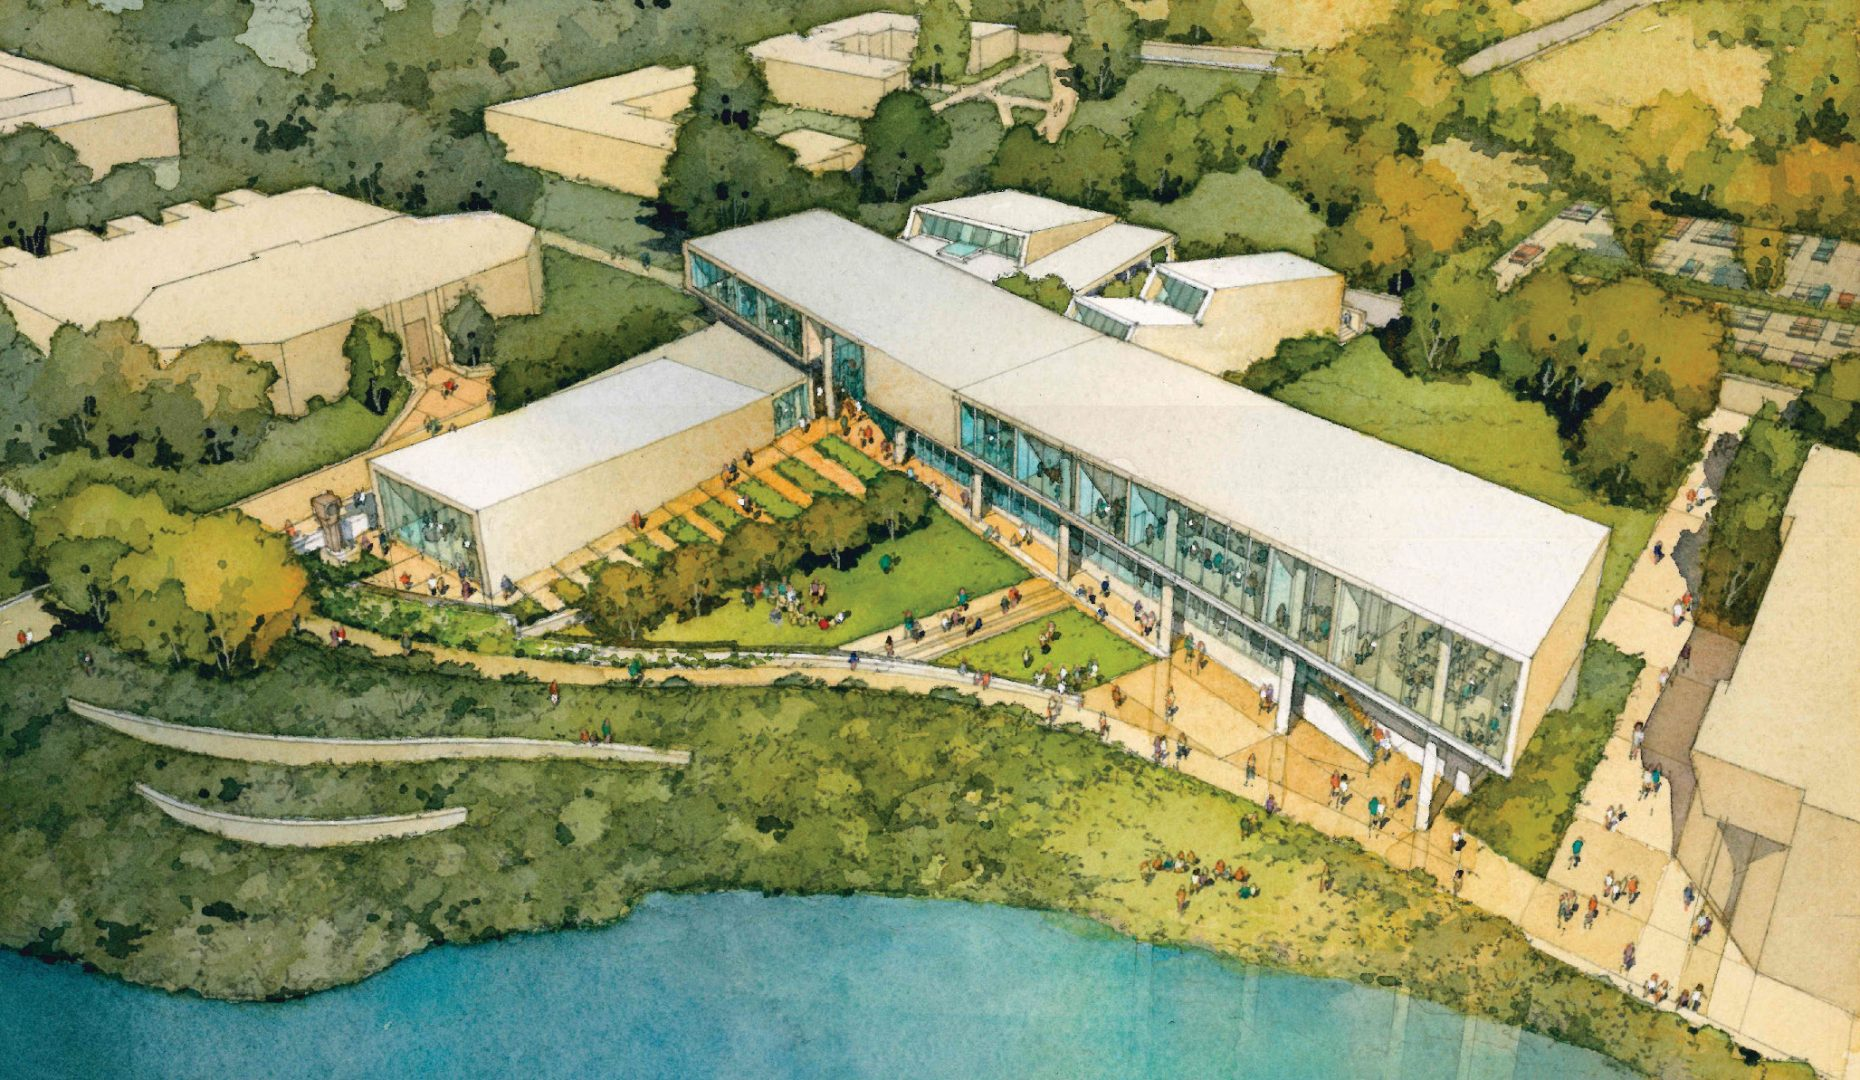 Aerial view rendering of Center of Visual Arts